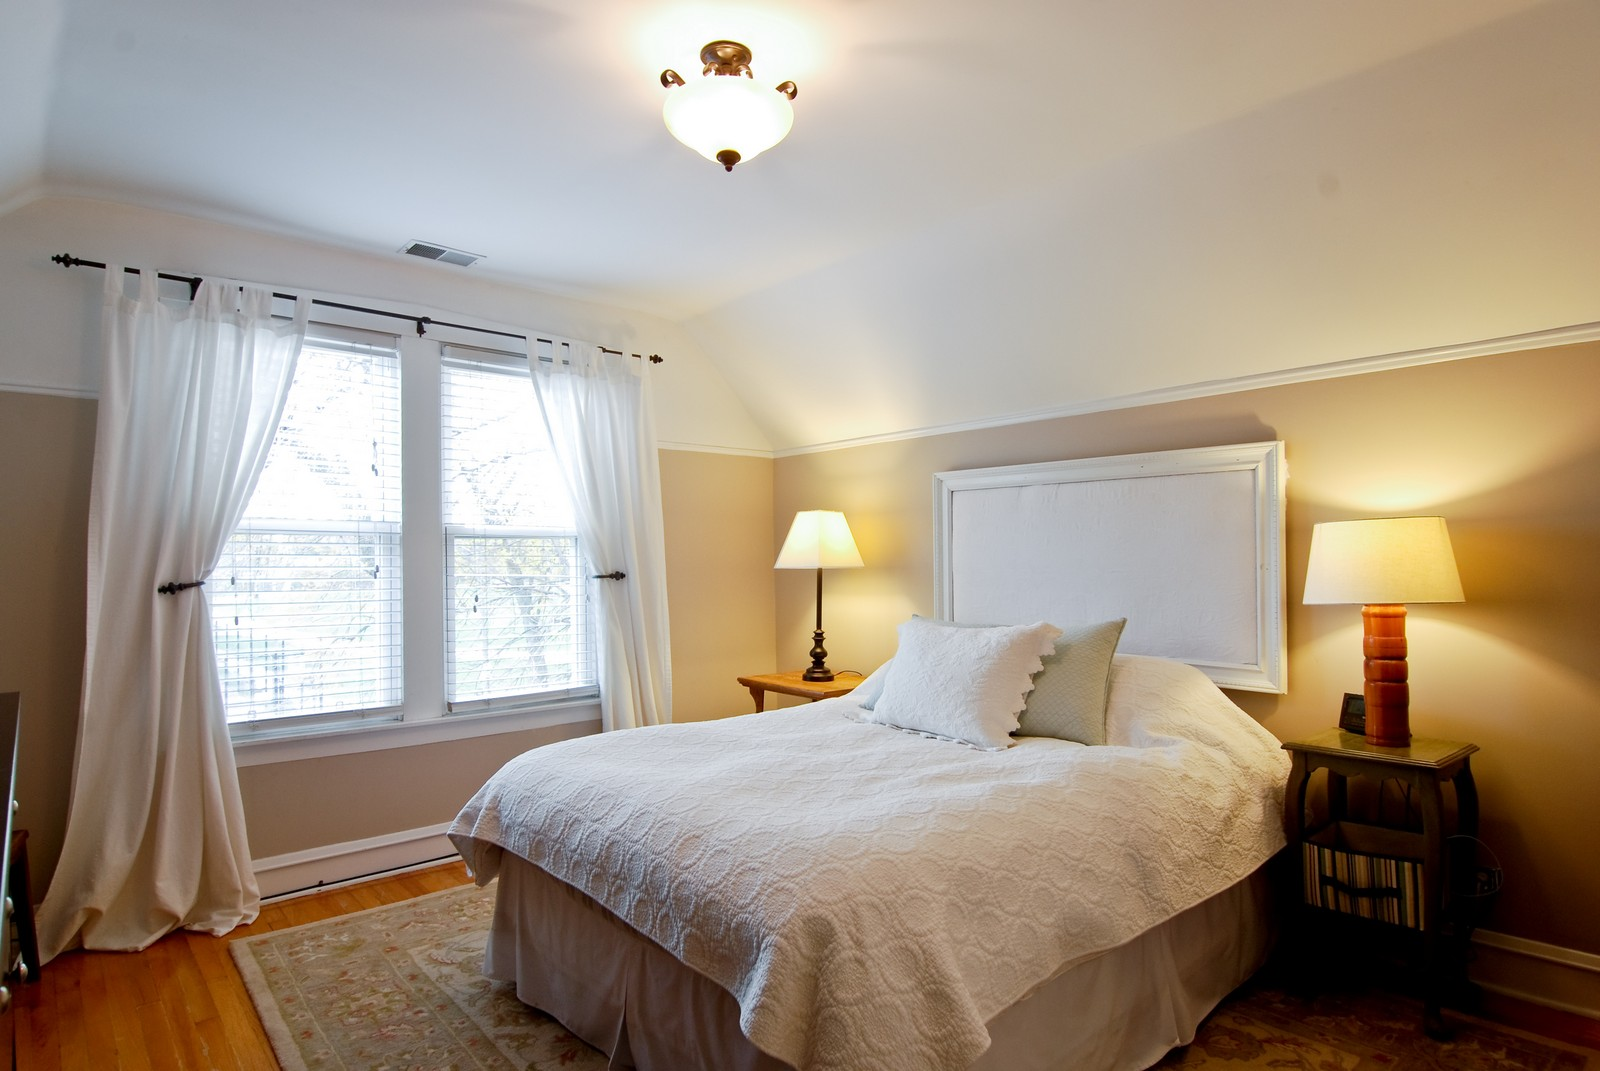 Real Estate Photography - 3436 N Kilbourn, Chicago, IL, 60641 - Master Bedroom